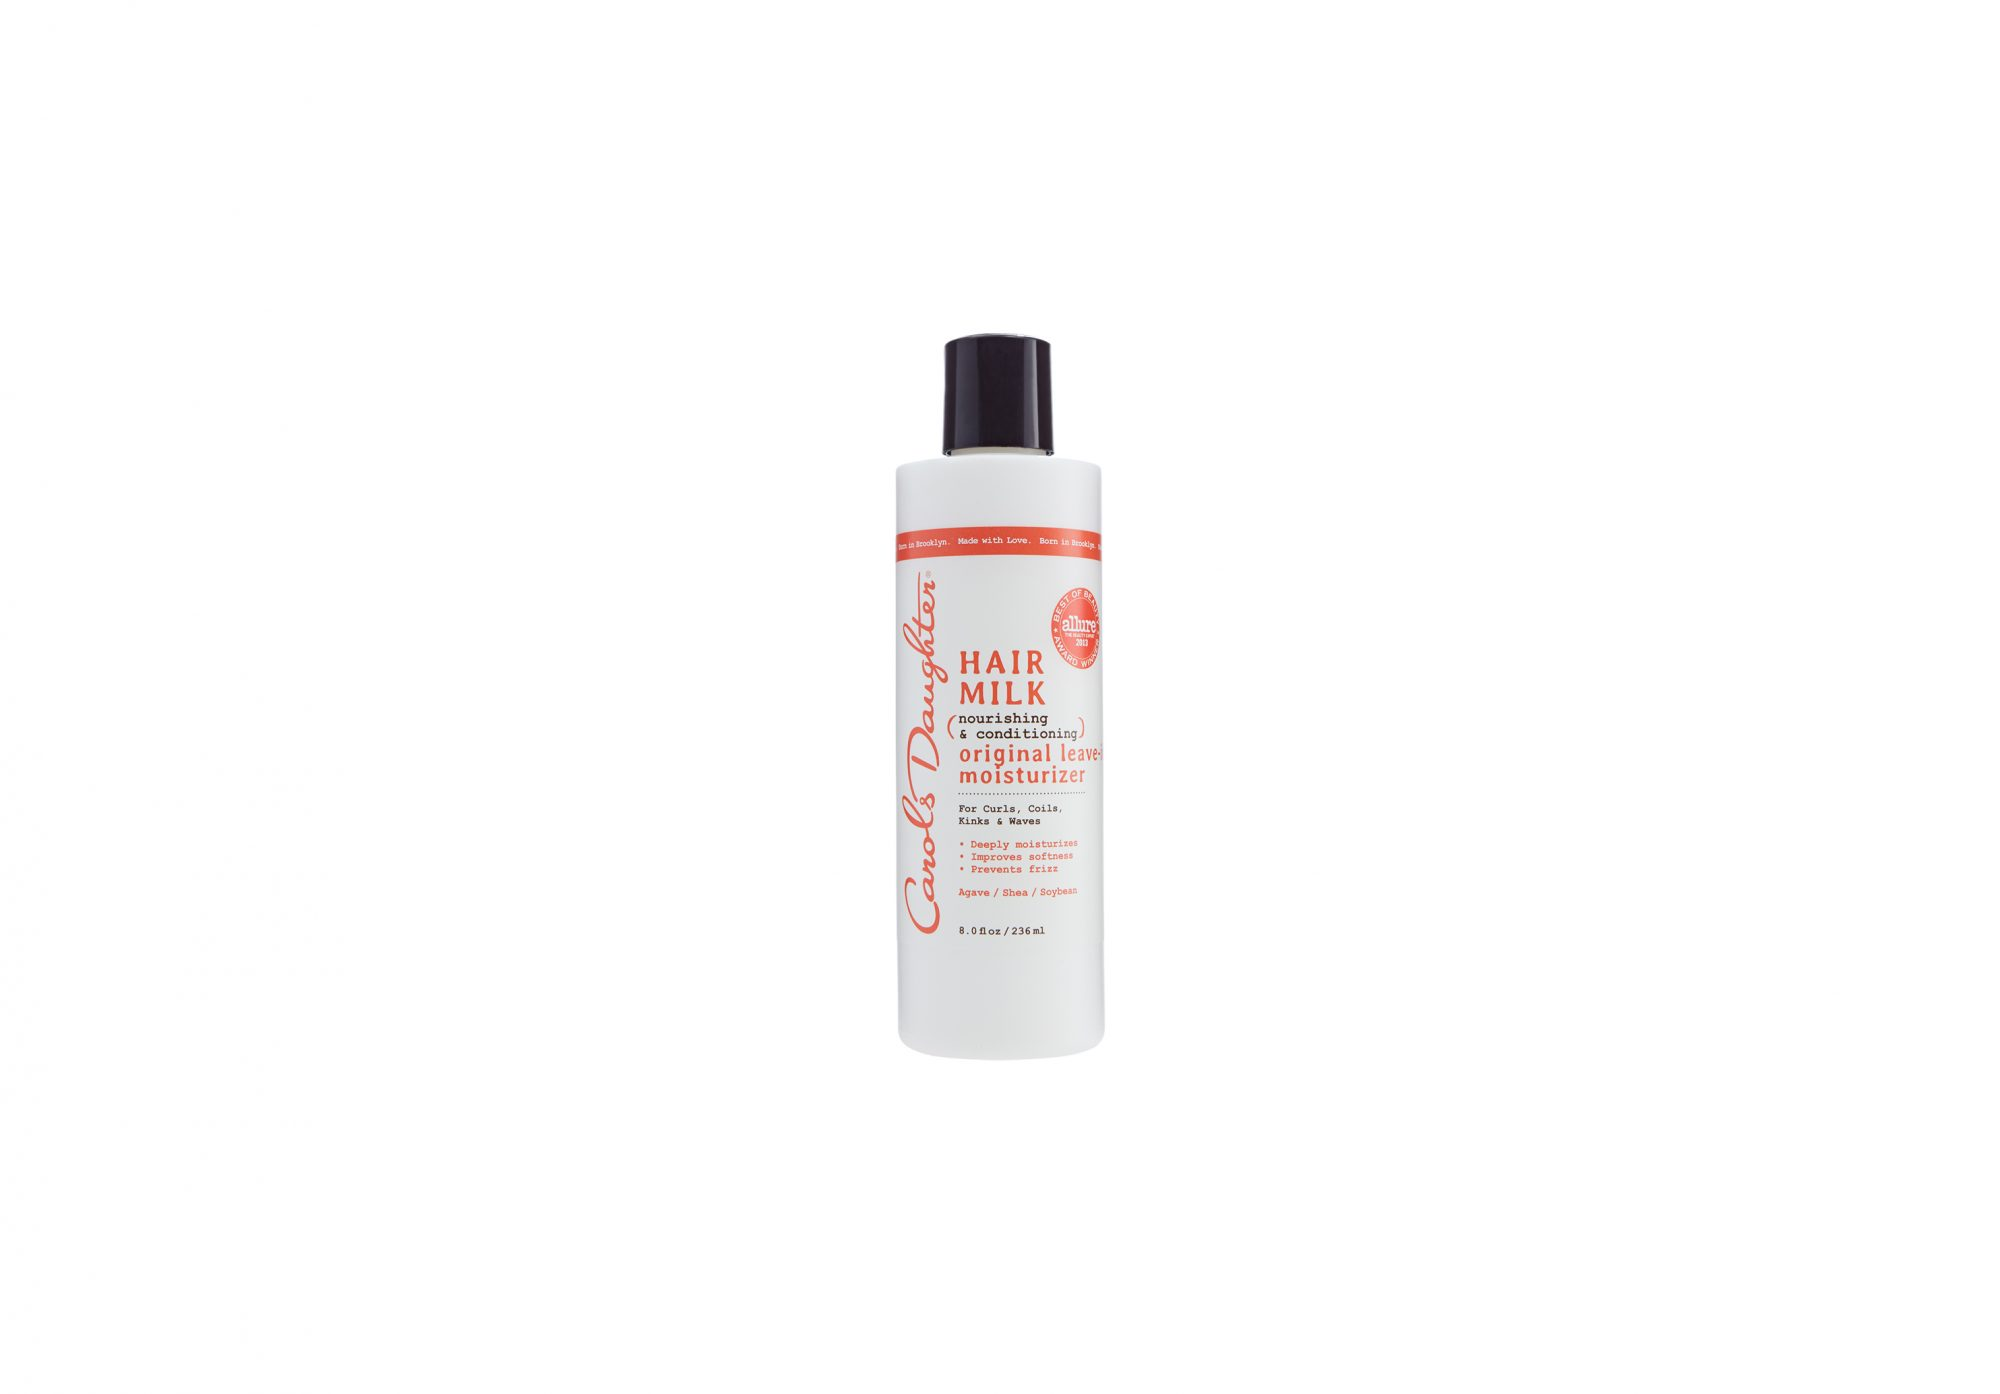 6 Drugstore Beauty Products Every Woman Should Own